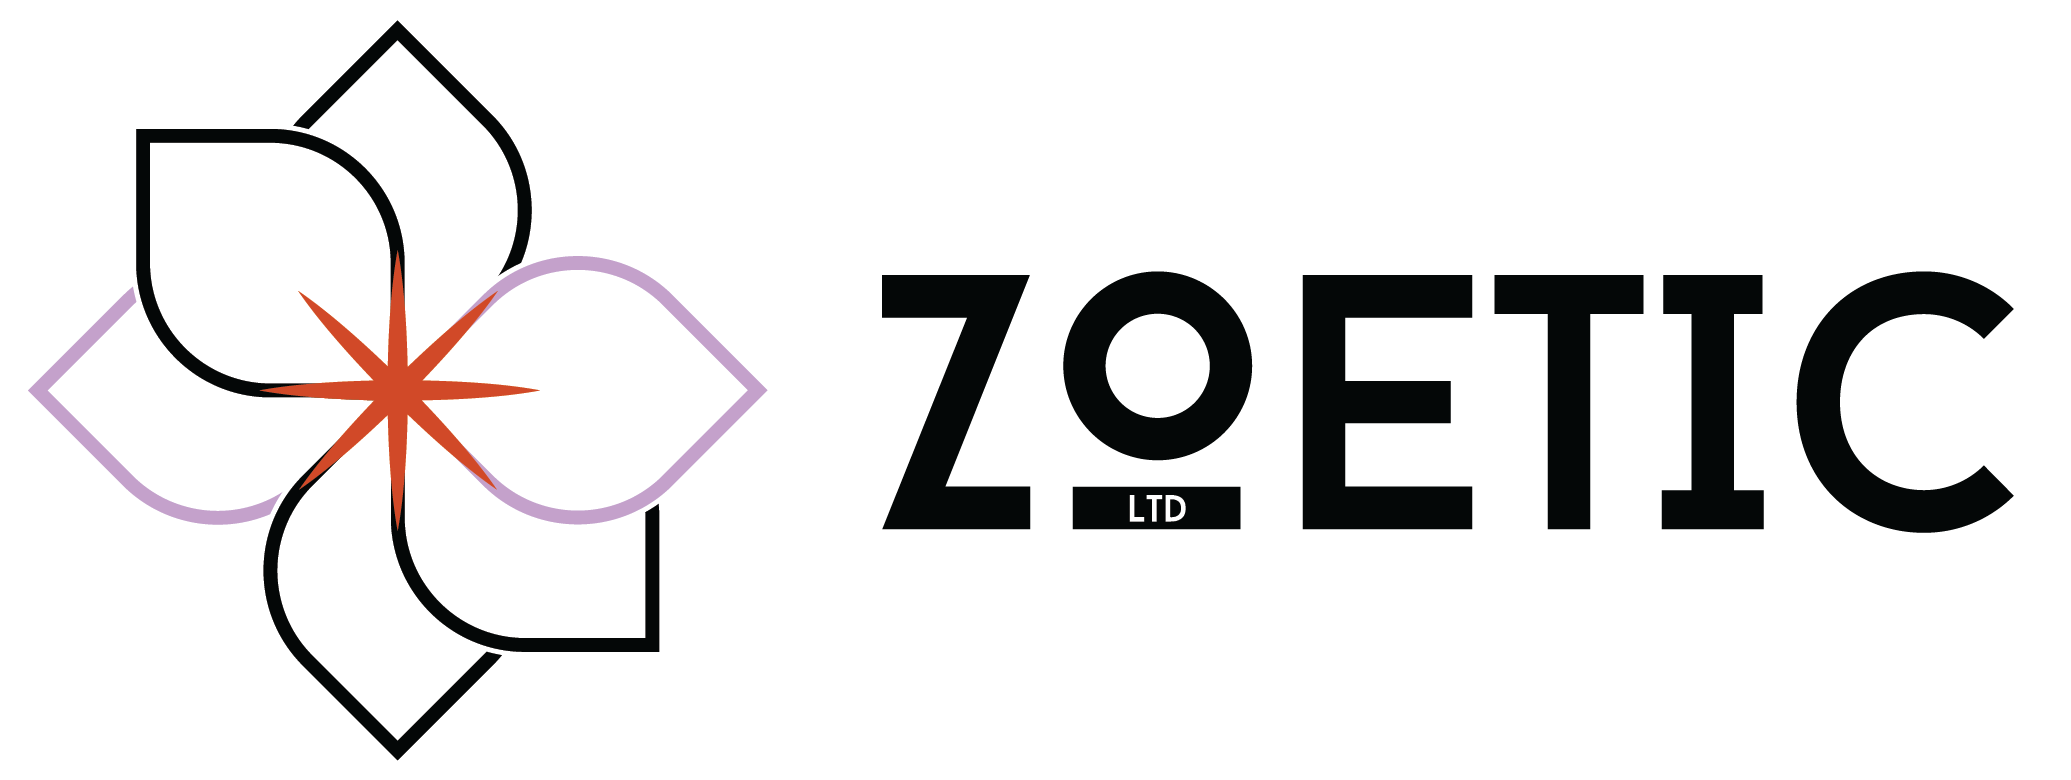 Zoetic ltd